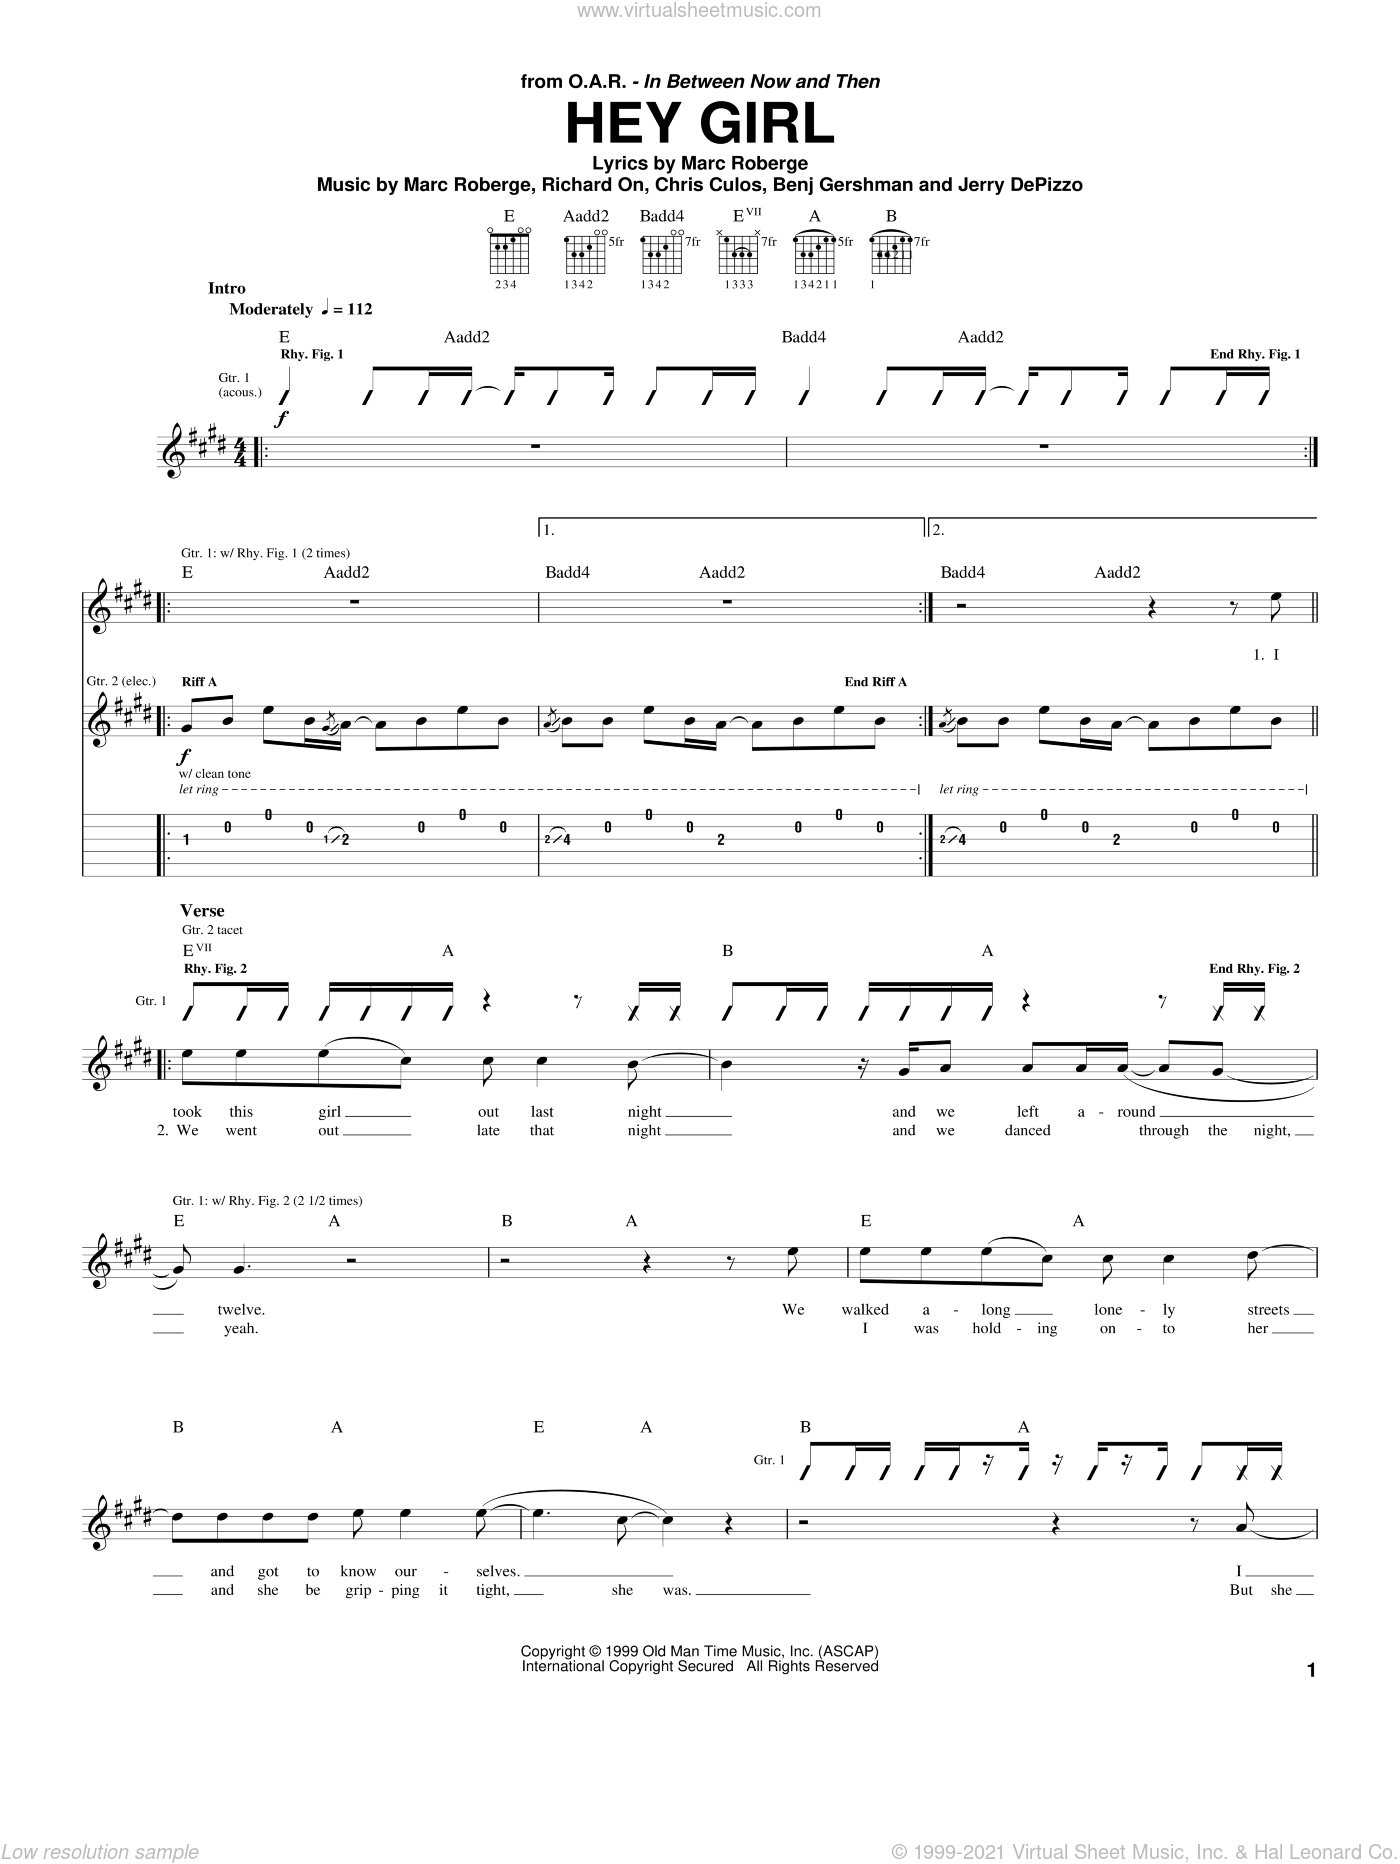 Hey Girl sheet music for guitar (tablature) by O.A.R., Benj Gershman, Chris Culos, Jerry DePizzo, Marc Roberge and Richard On, intermediate. Score Image Preview.